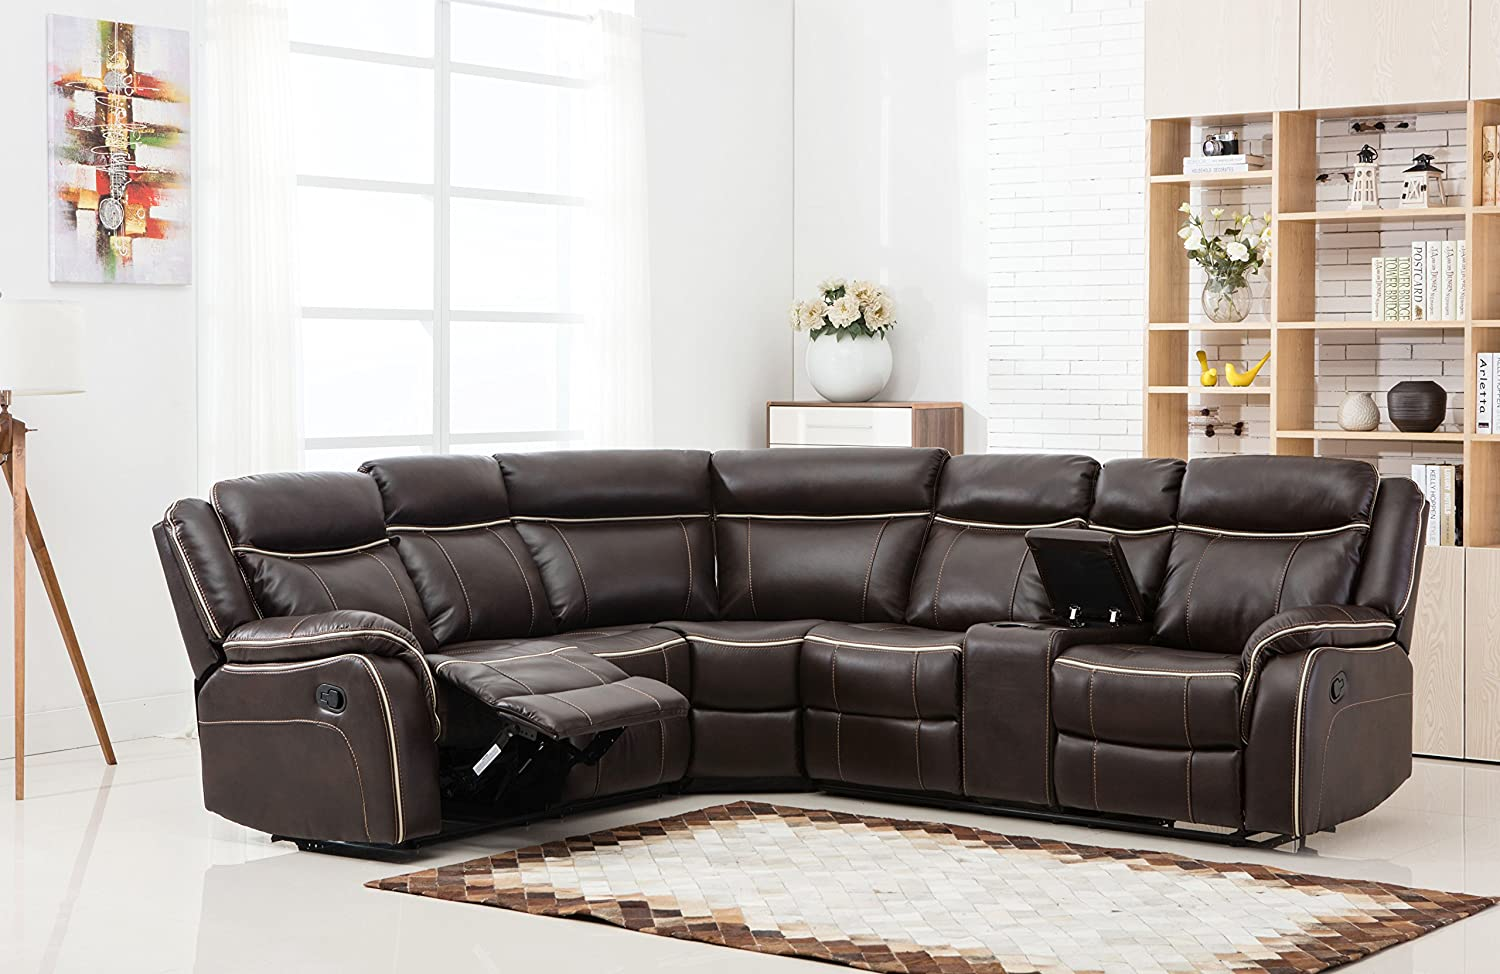 Large Classic and Traditional Two Tone Bonded Leather Reclining Corner  Sectional Sofa (Brown)